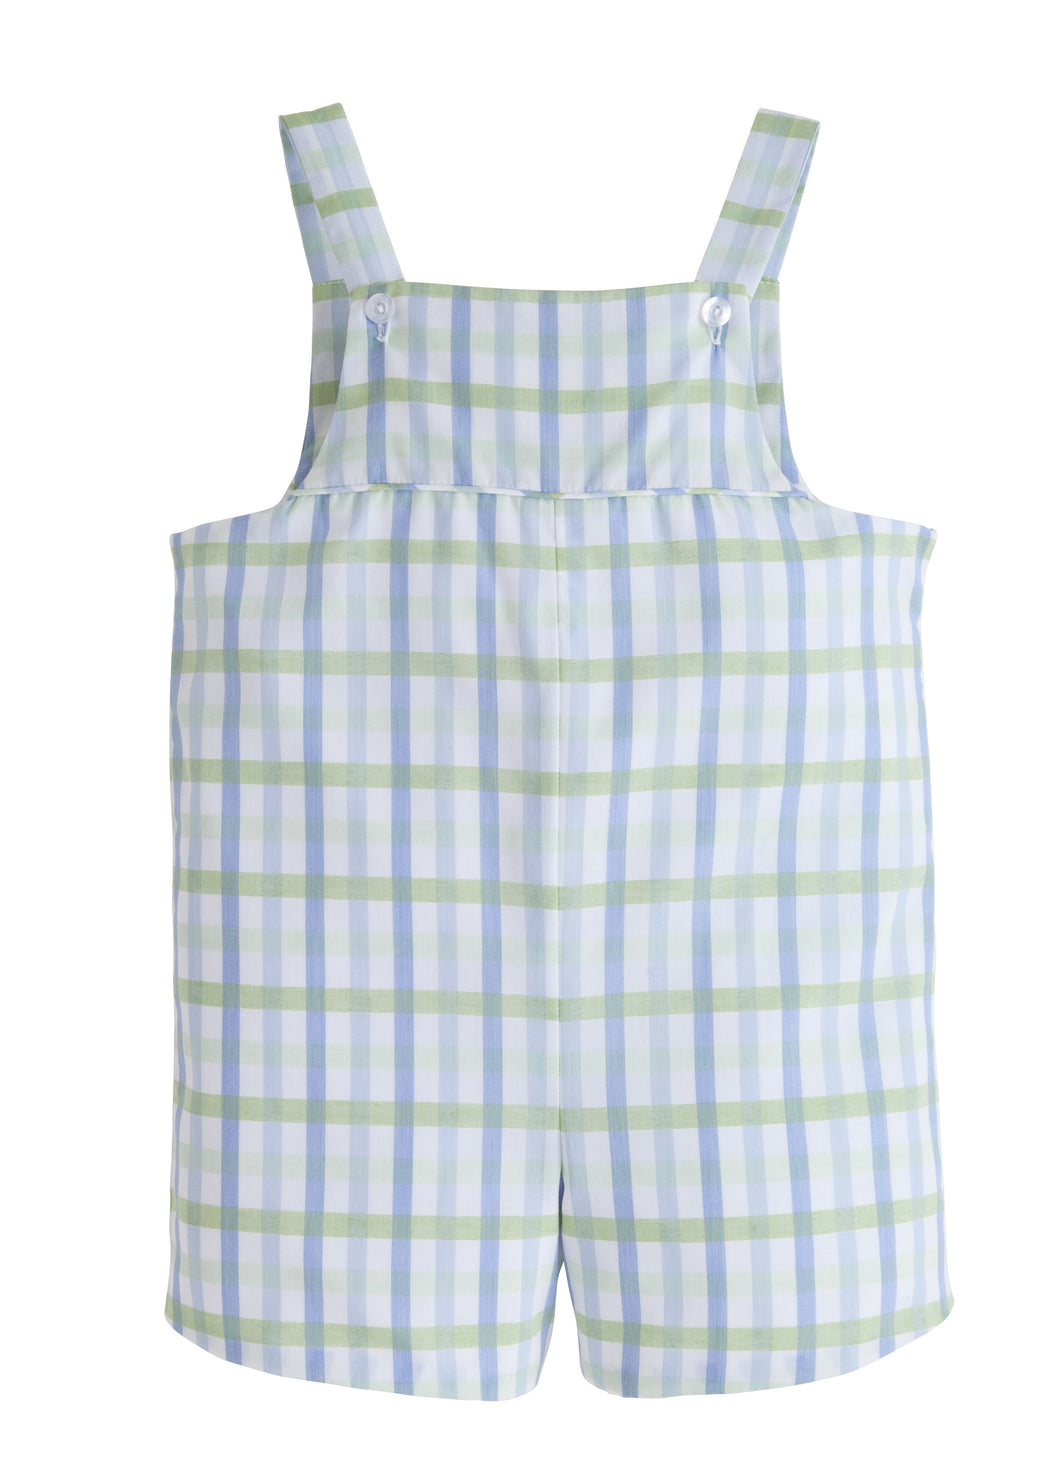 Vintage Check Hampton Shortall